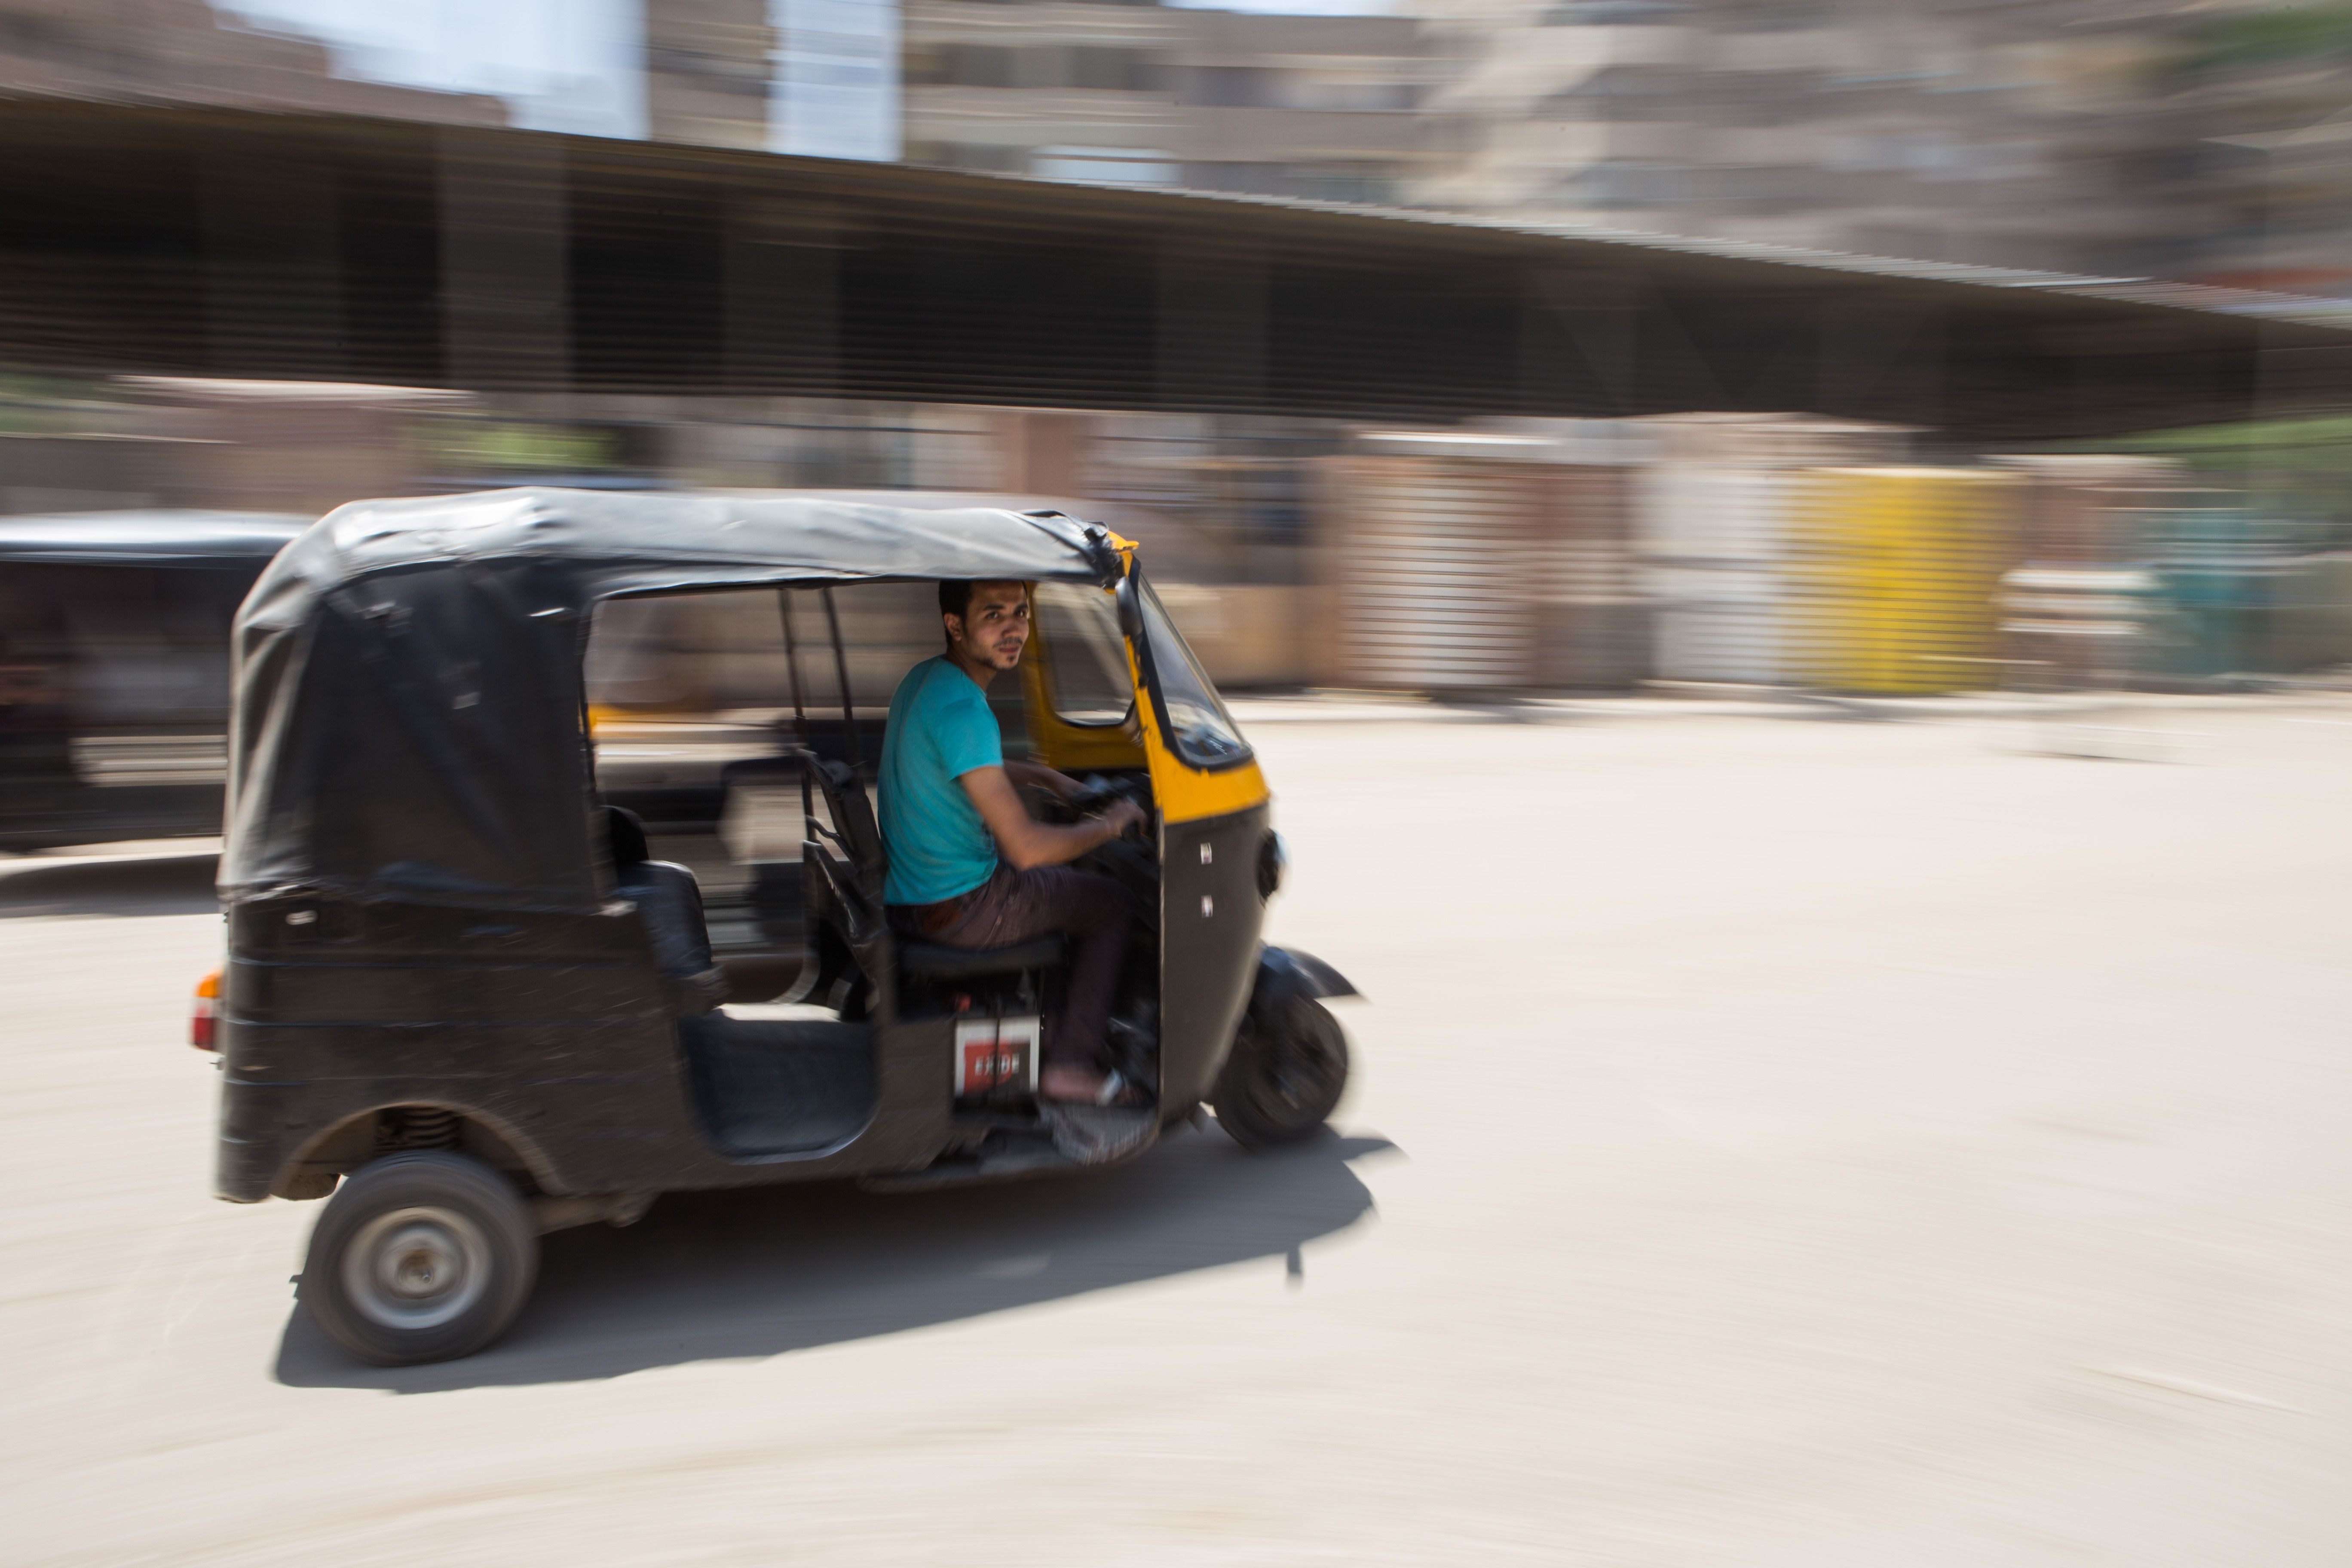 A tuk tuk driver whizzes through the streets of Mohandiseen, Cairo. May 1, 2014